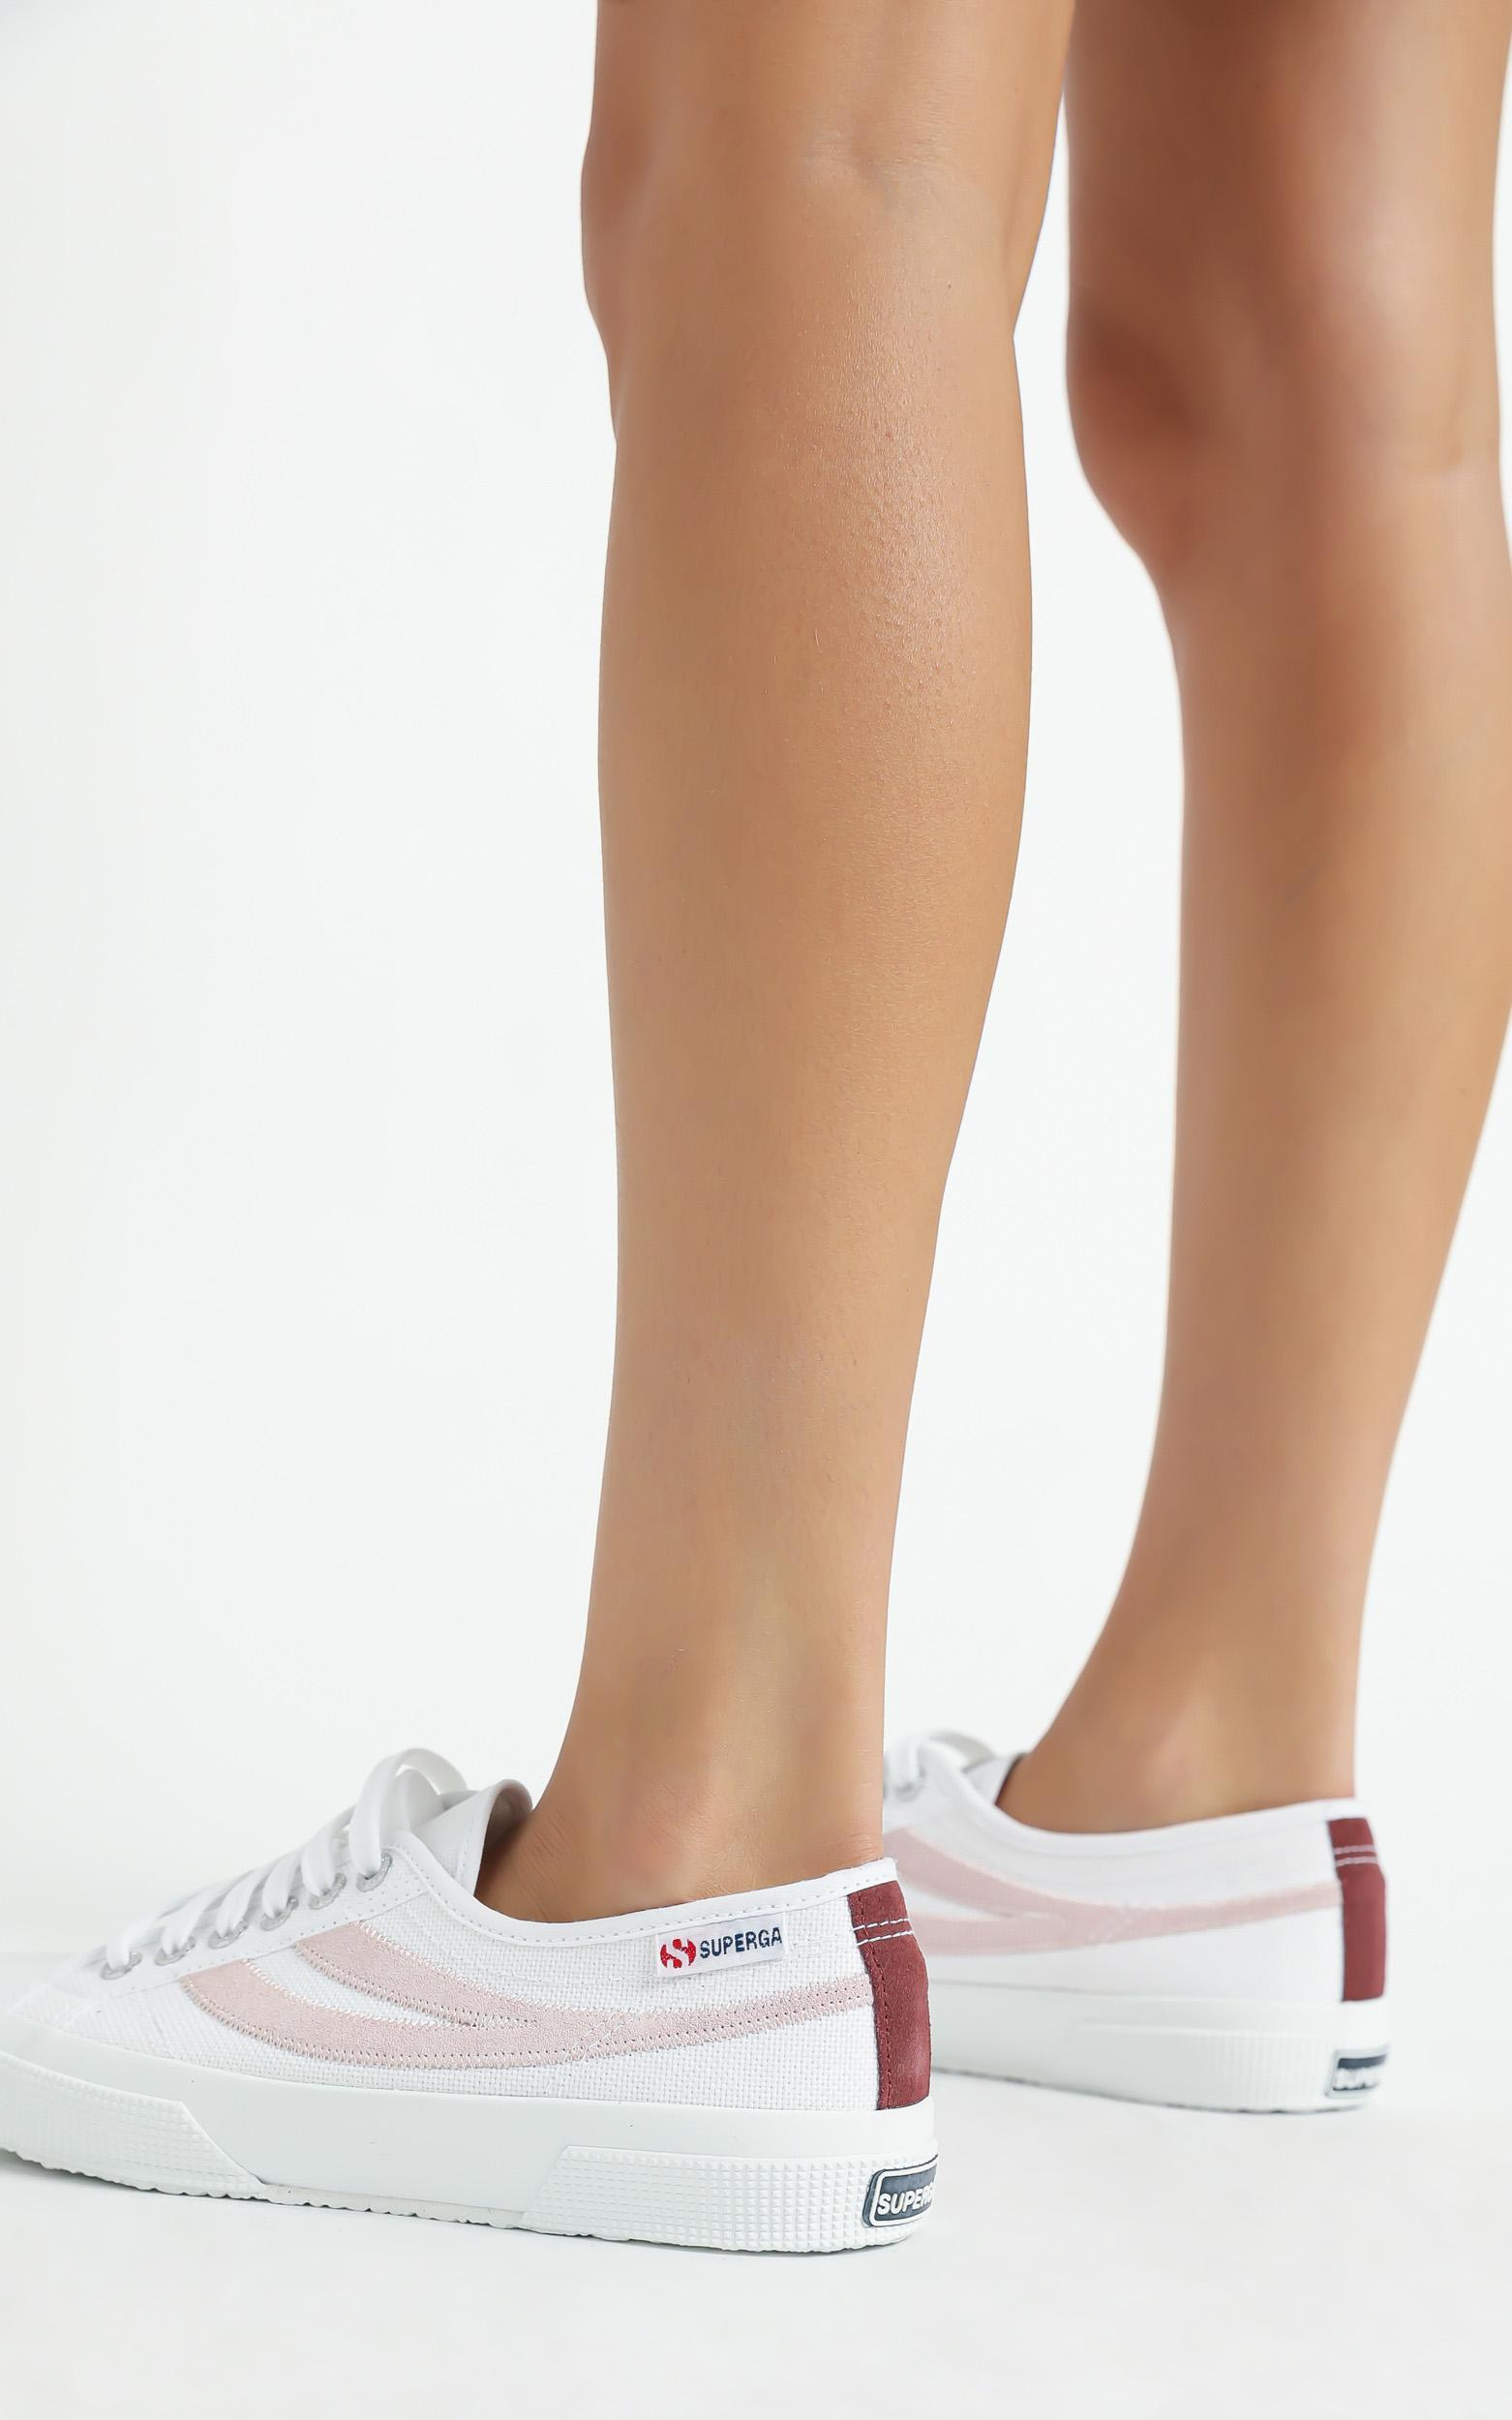 Superga - 2953 Swallowtail Cotu Sneaker in white - pink pale lilac - 5, Pink, hi-res image number null